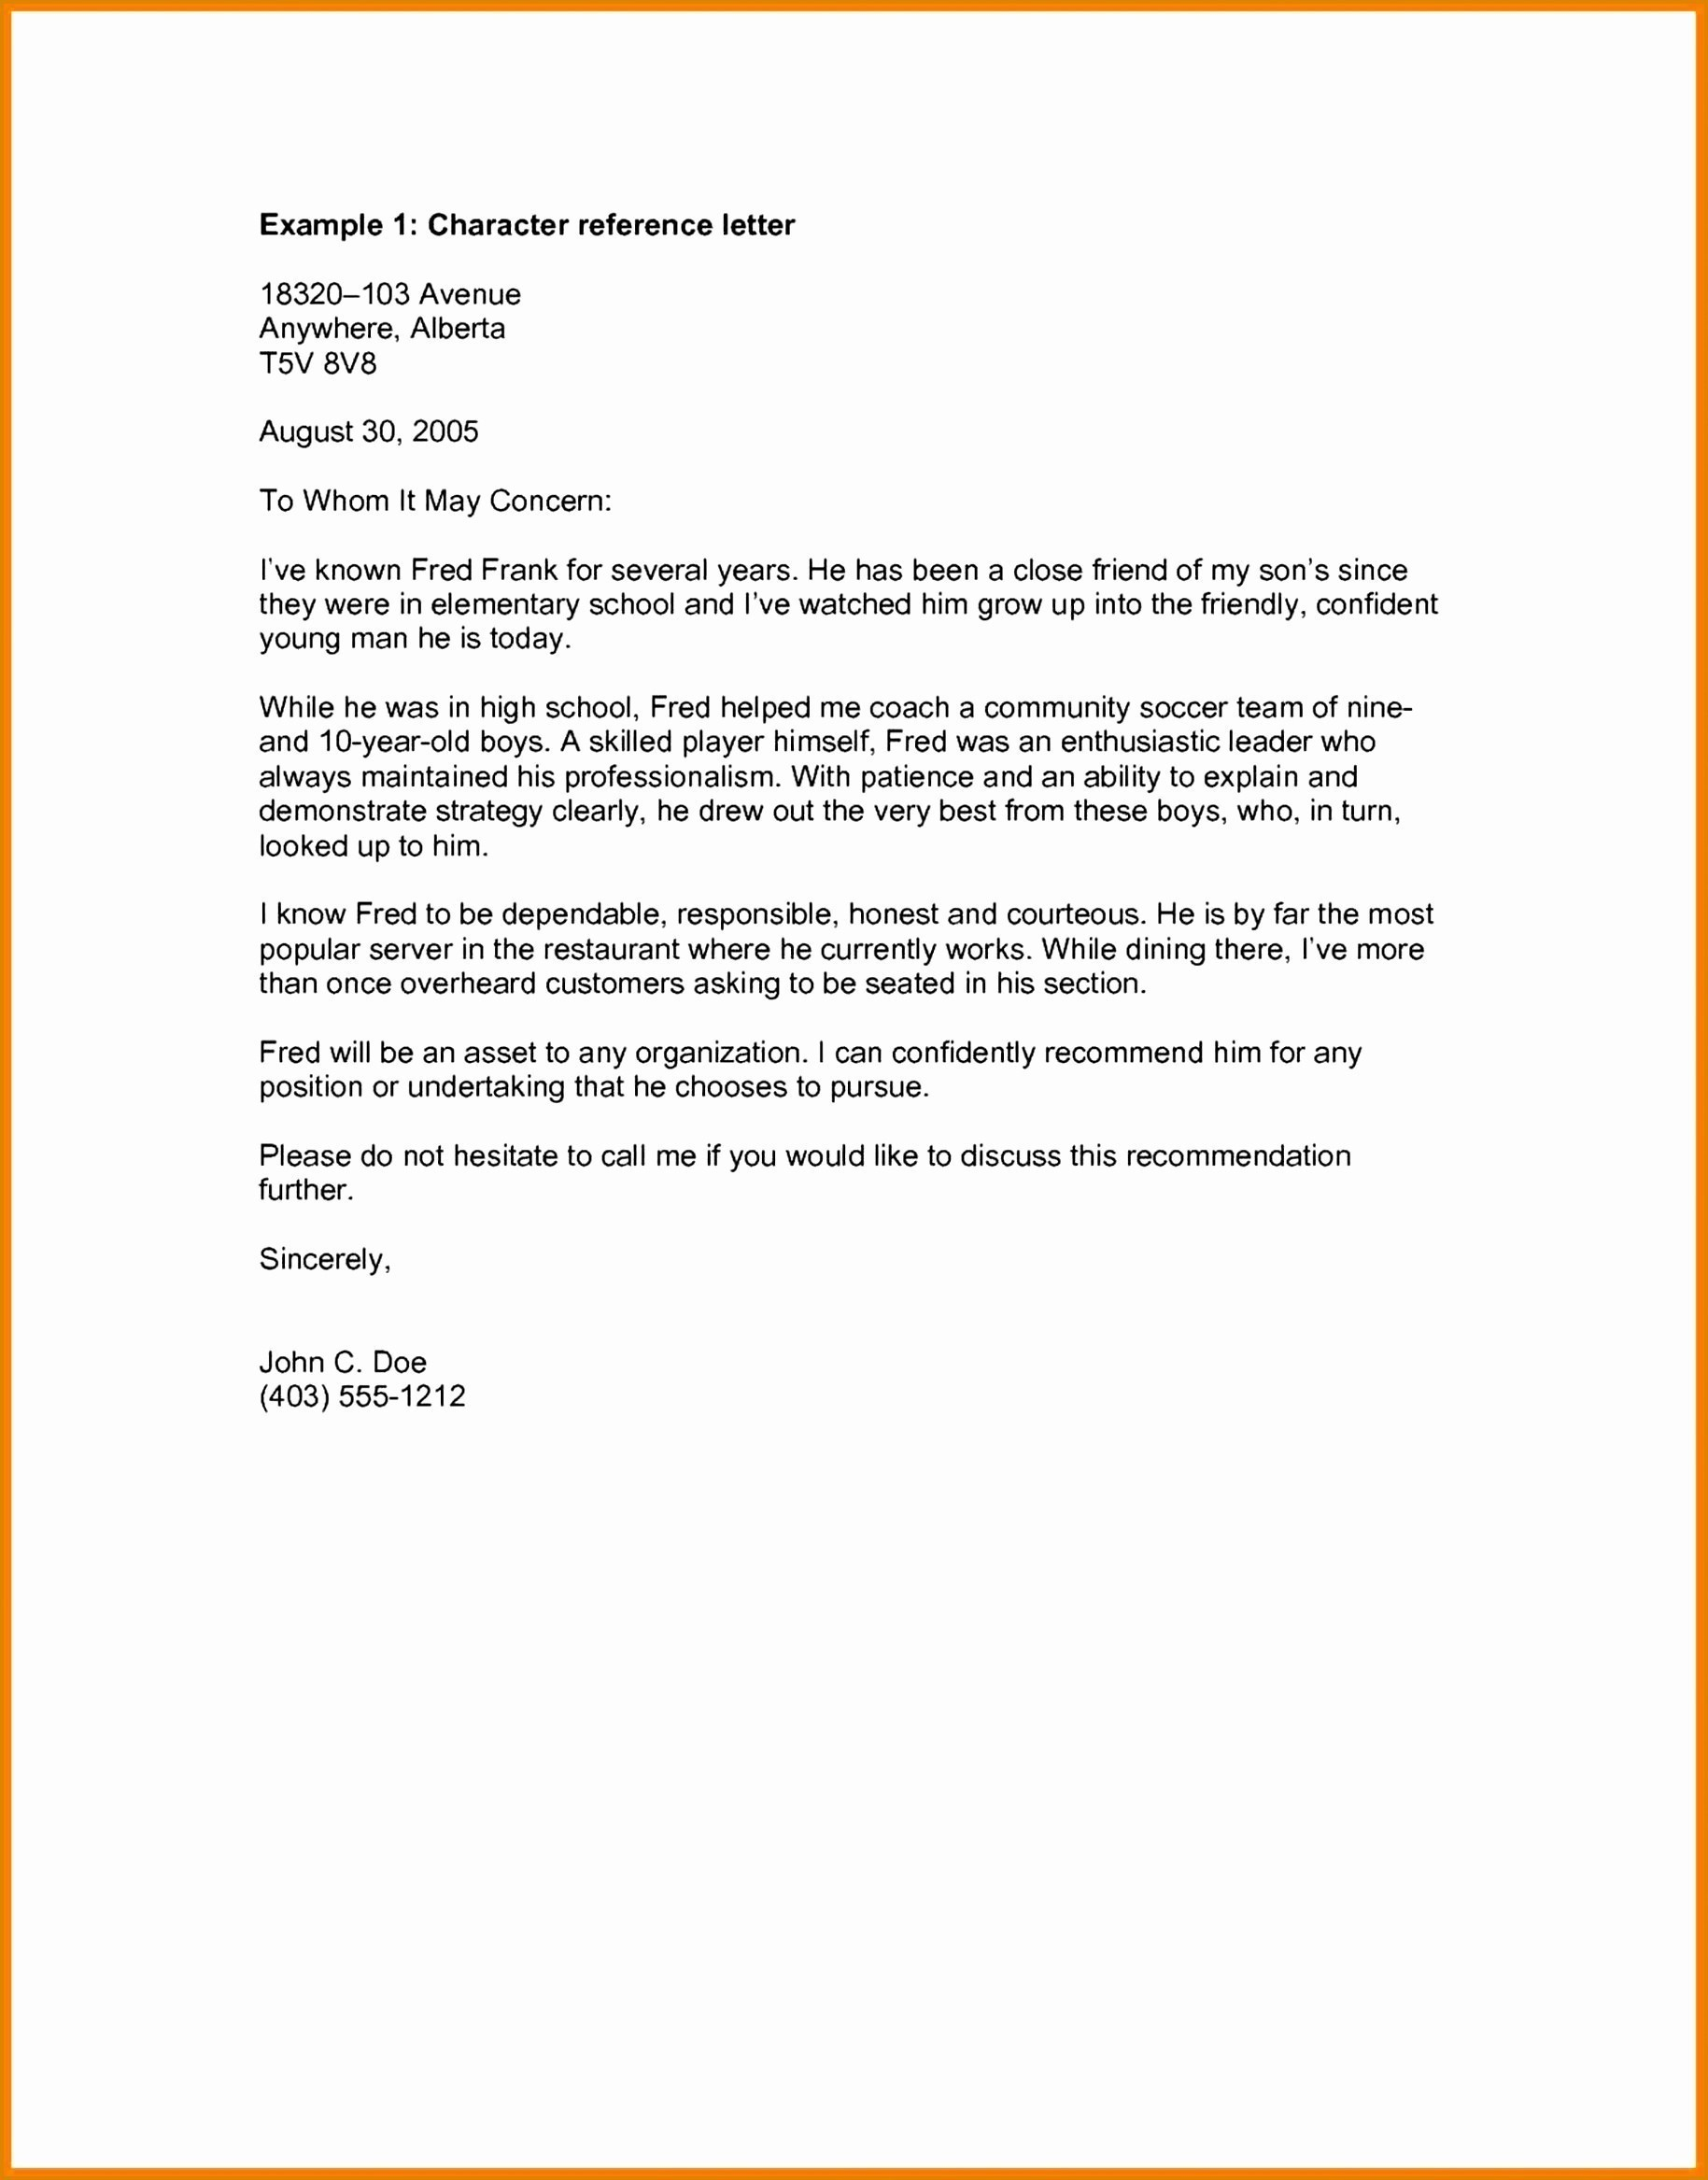 Demand Letter to Landlord Template - Plaint Letter Template Refund Fresh Template References Letter